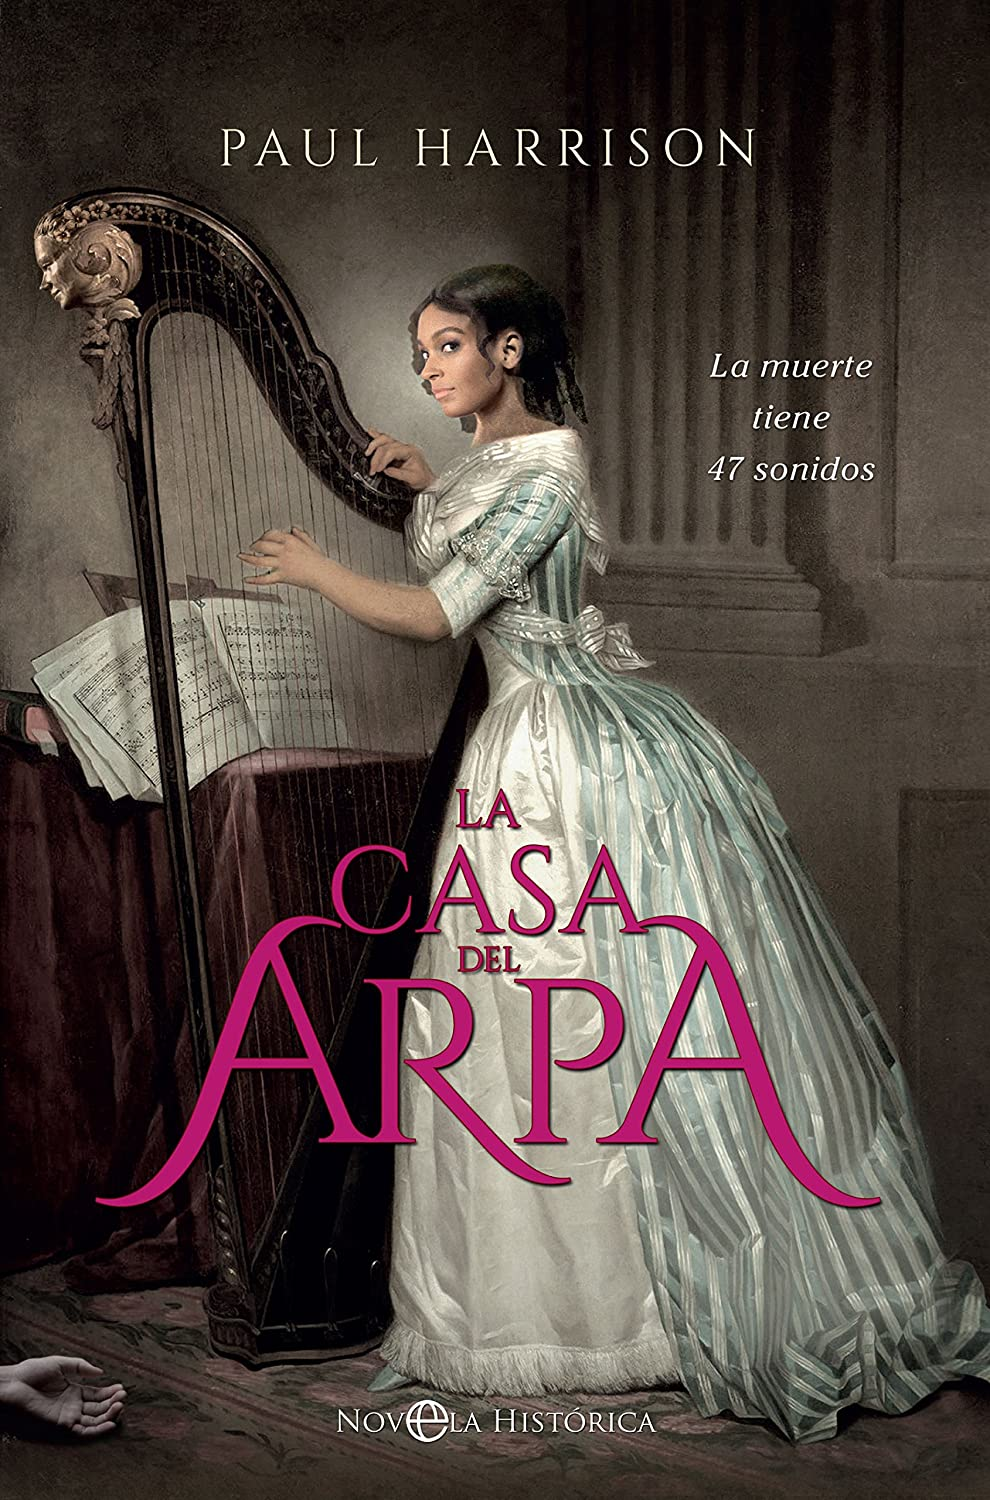 La casa del arpa (Novela histórica) eBook: Harrison, Paul: Amazon ...